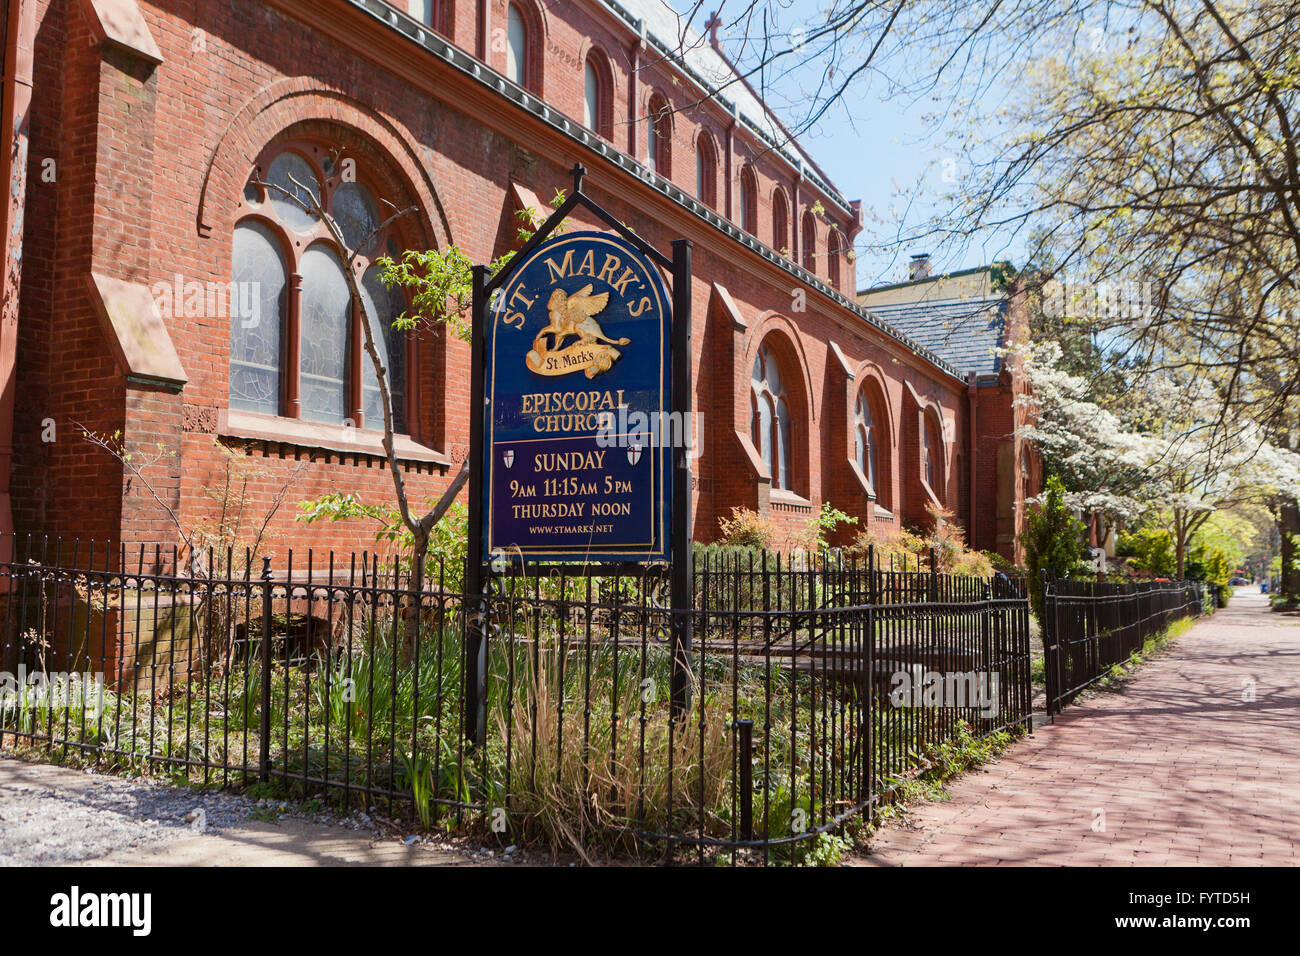 St. Mark's Episcopal Church - Washington, DC USA - Stock Image